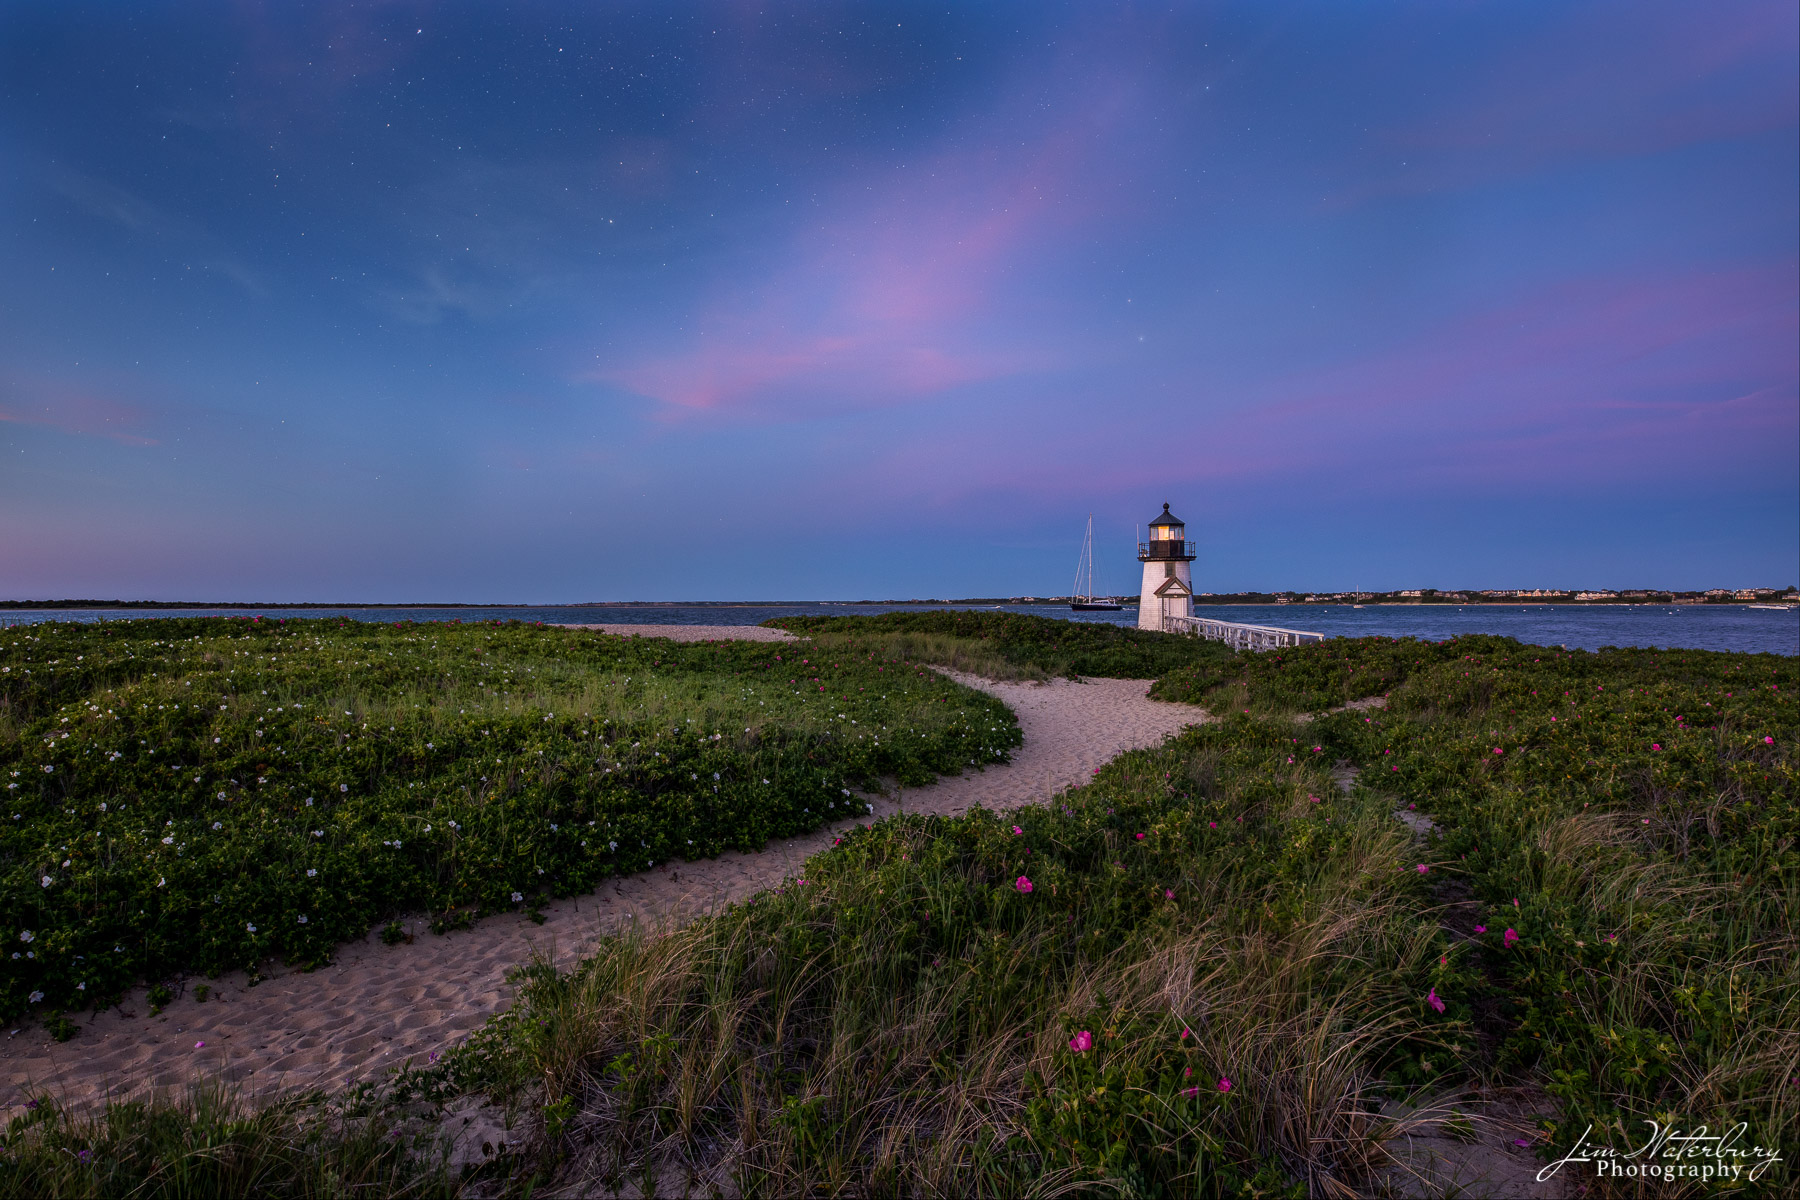 Image of the Brant Point Lighthouse, capturing the transition from evening to night, from the colorful pink skies that follow...